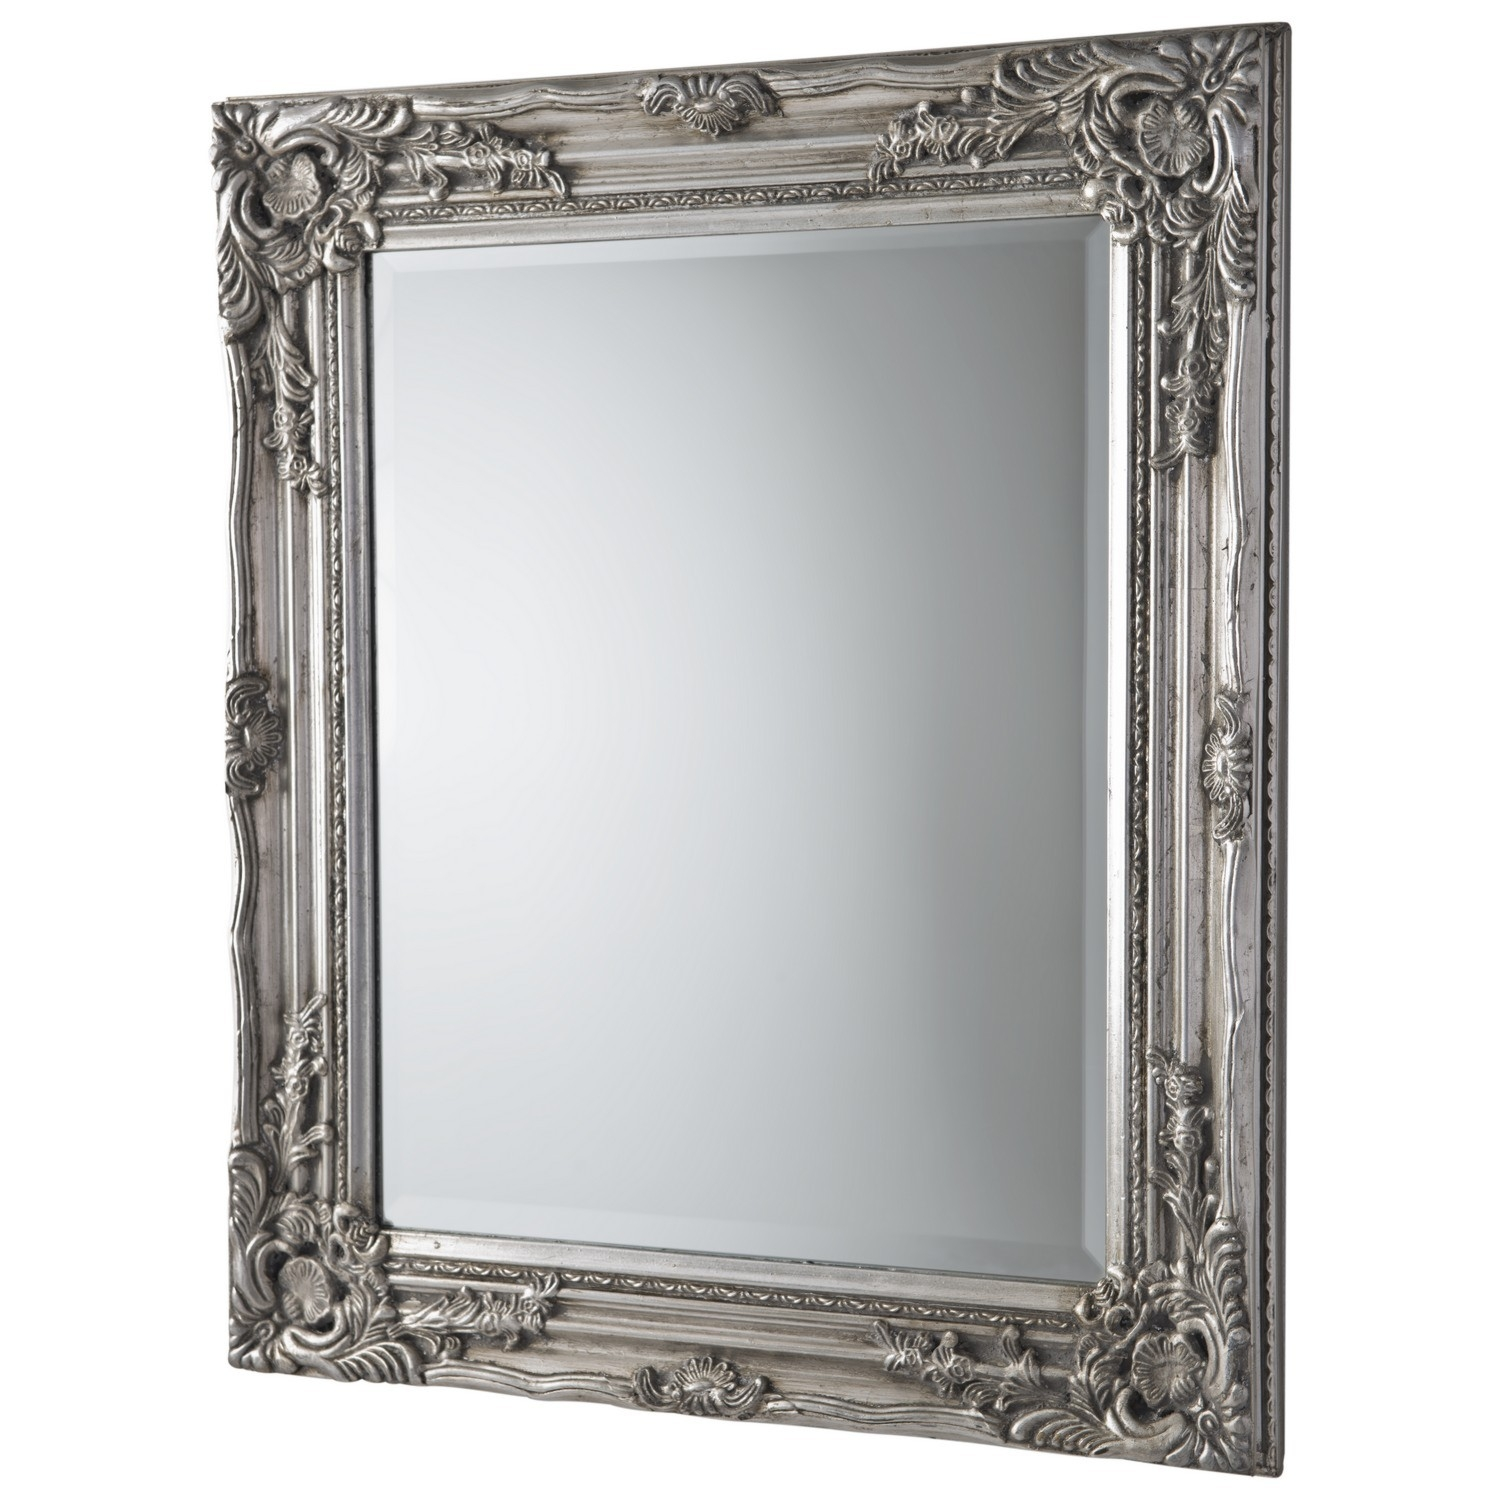 Antique Ornate Mirror Silver Regarding Silver Ornate Mirror (Image 5 of 15)